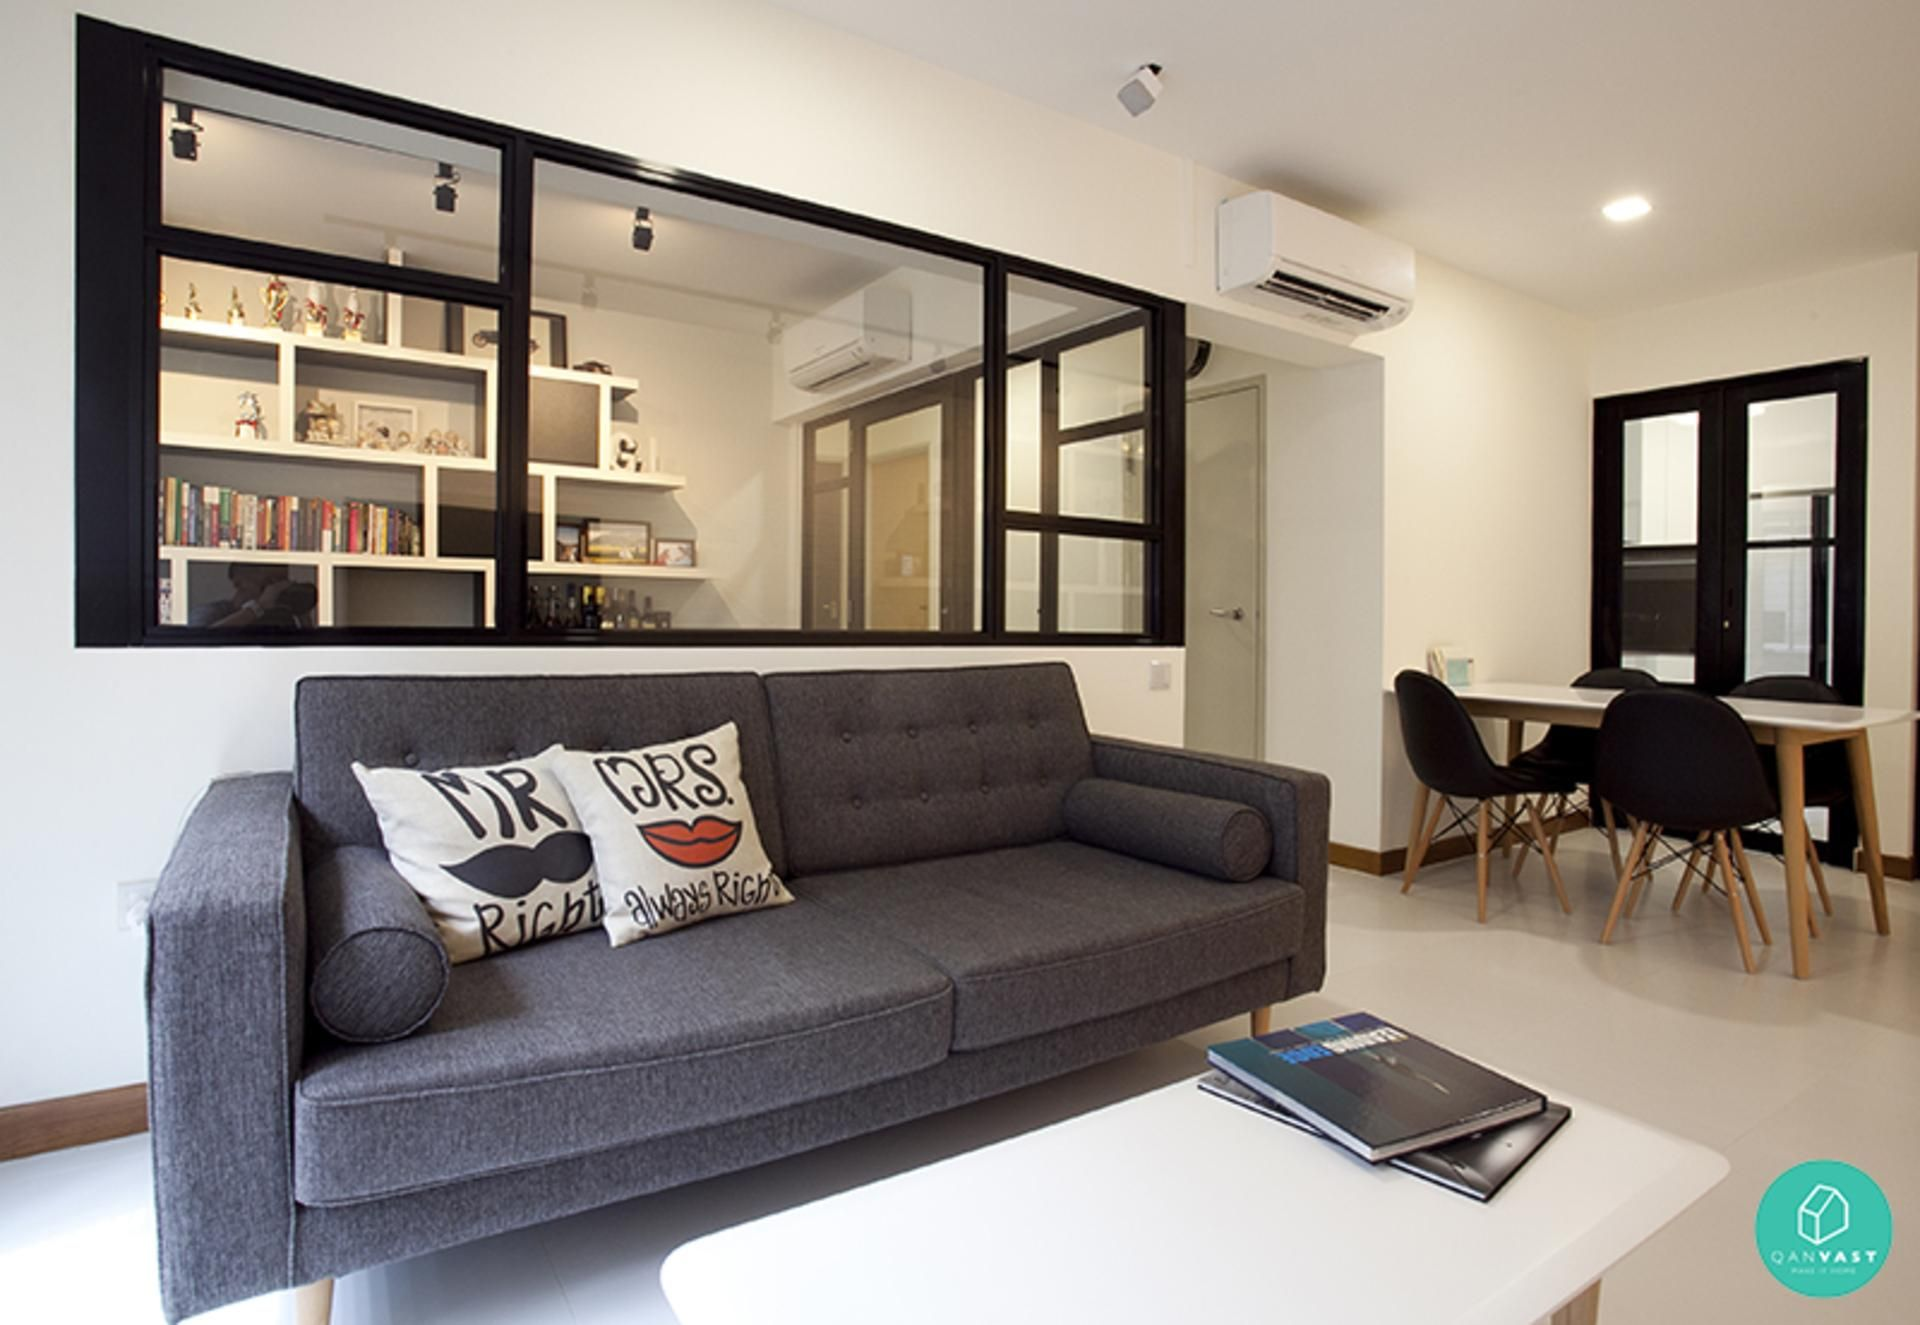 10 Most Popular Homes (HDB/Condo) In Singapore 2015